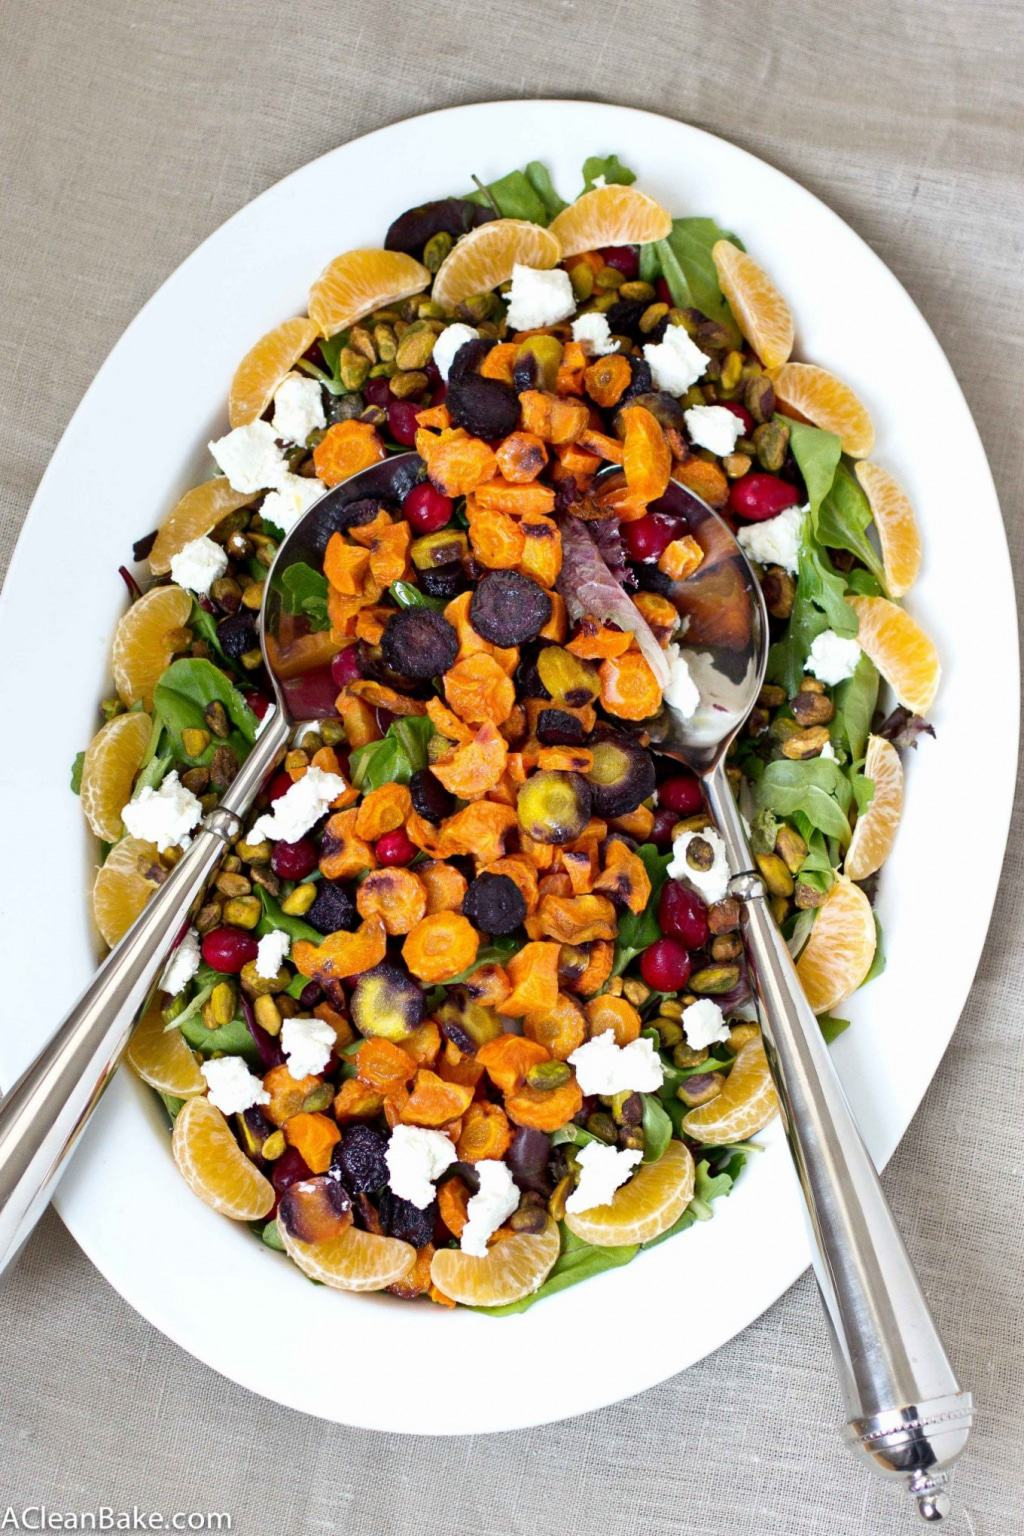 Roasted Rainbow Carrot Salad with Cranberries, Pistachios and Honey Mustard Vinaigrette (Gluten Free and Paleo)